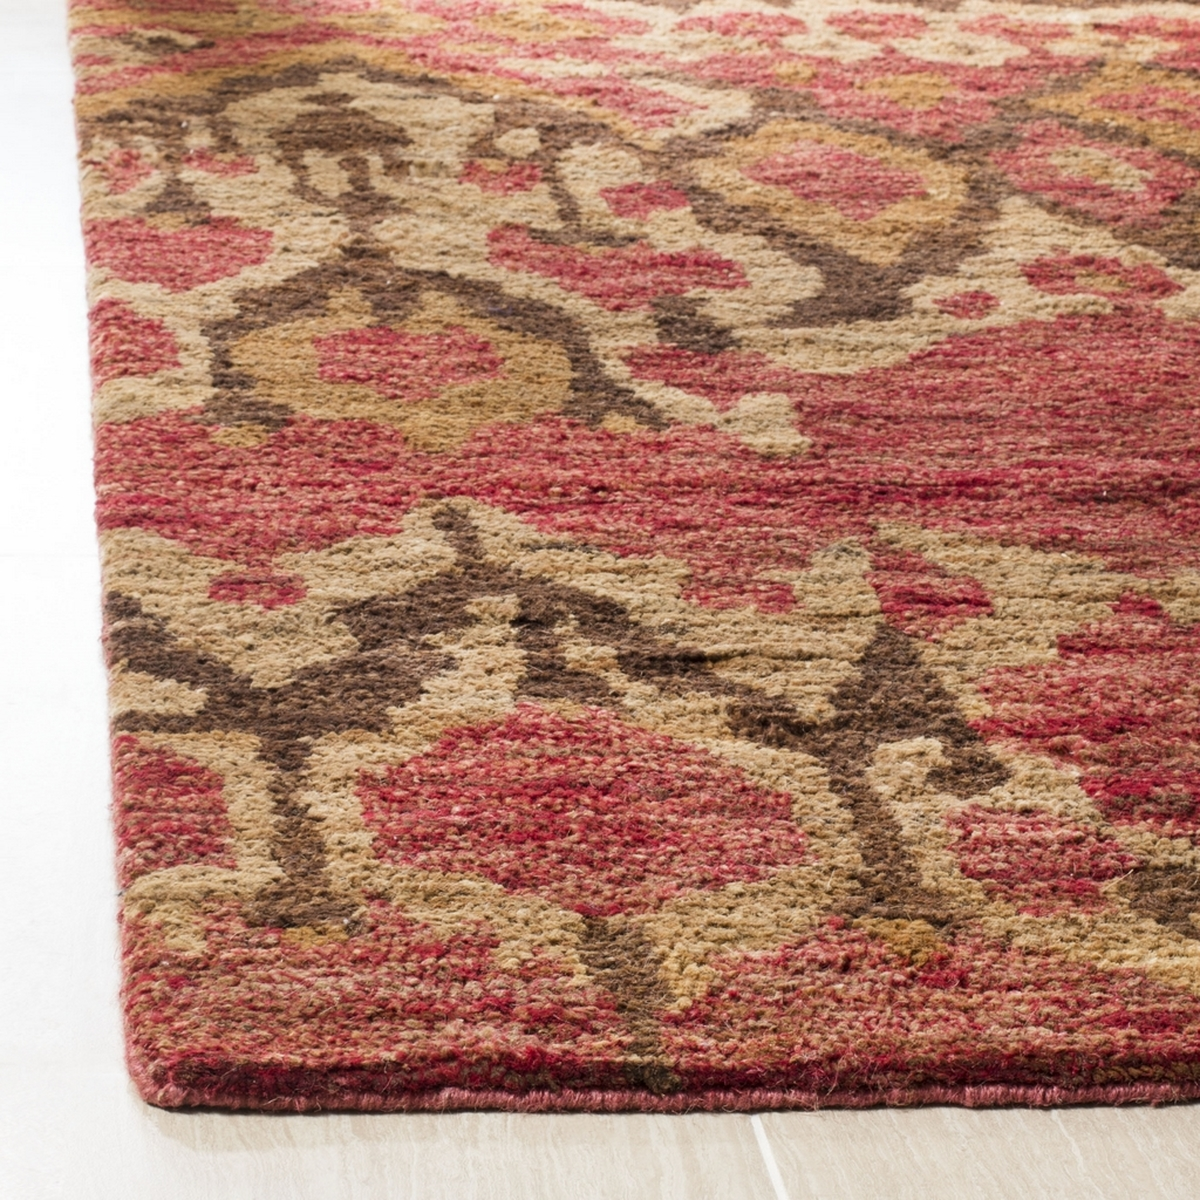 Large Area Rugs Target 20 Persian Rug Silk Aubusson Flat Weave 100